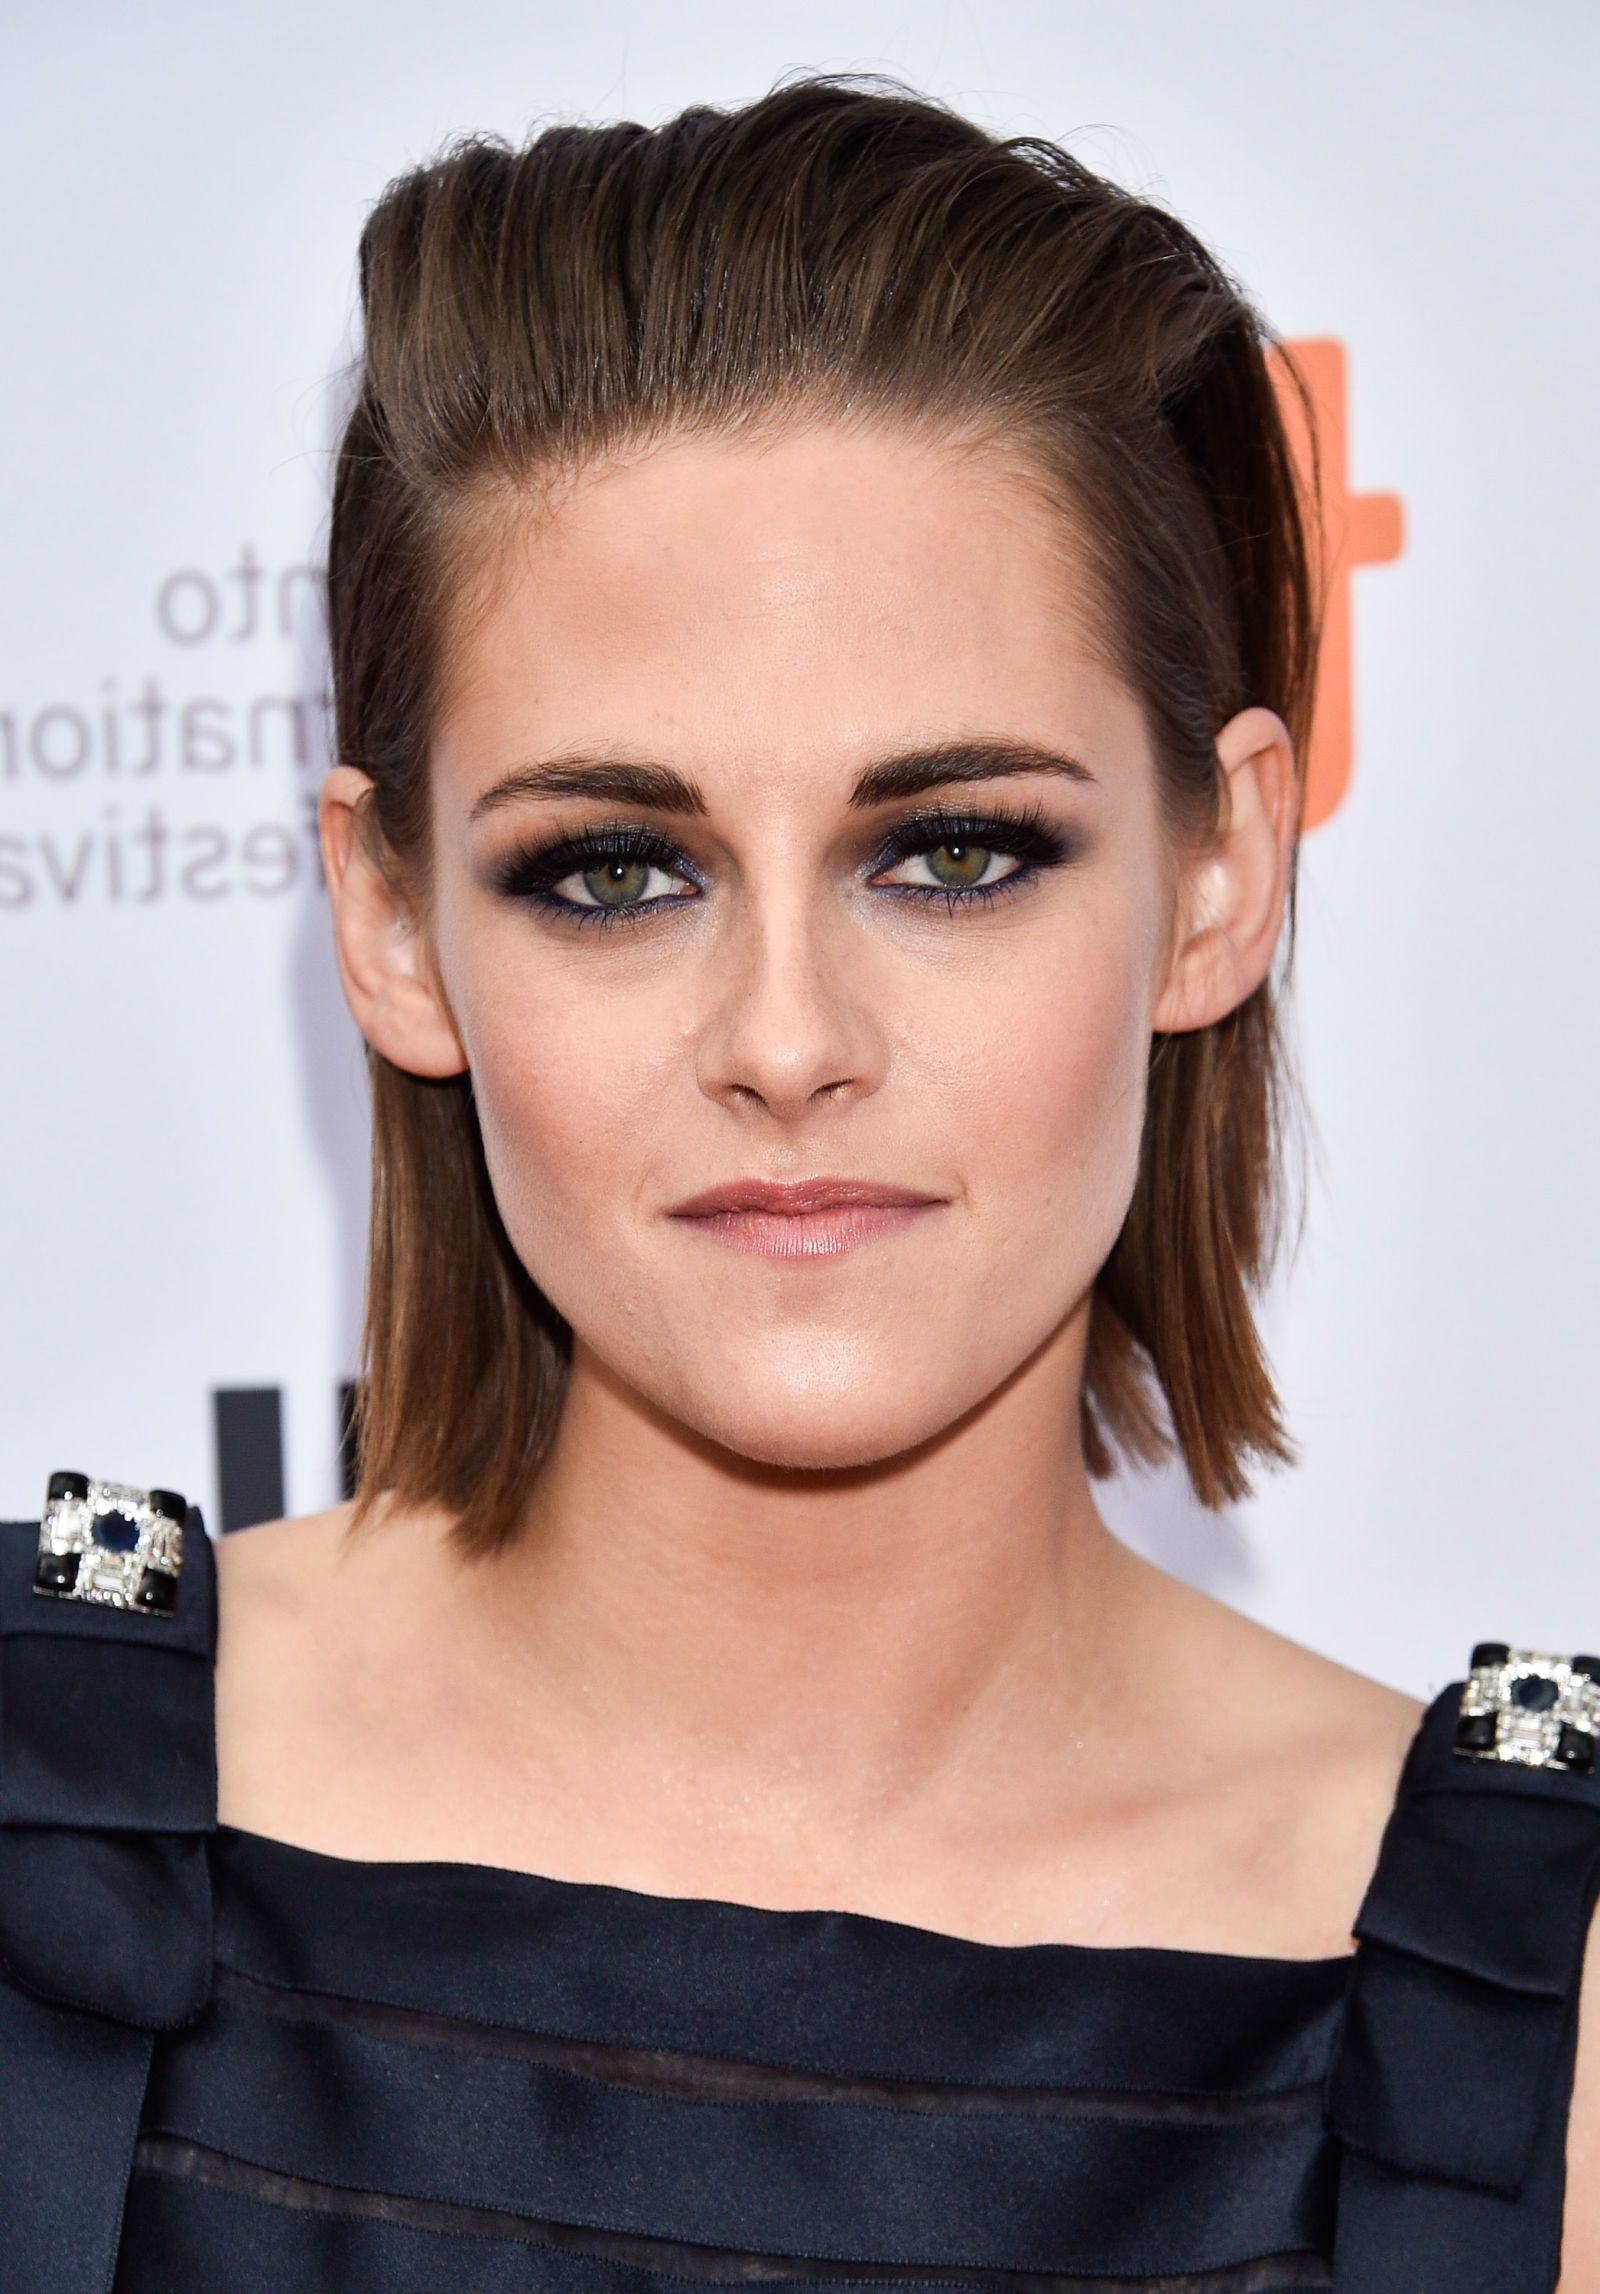 The 65 Best Short Hairstyles And Haircuts To Try Now | Kristen Intended For Kristen Stewart Short Hairstyles (View 23 of 25)